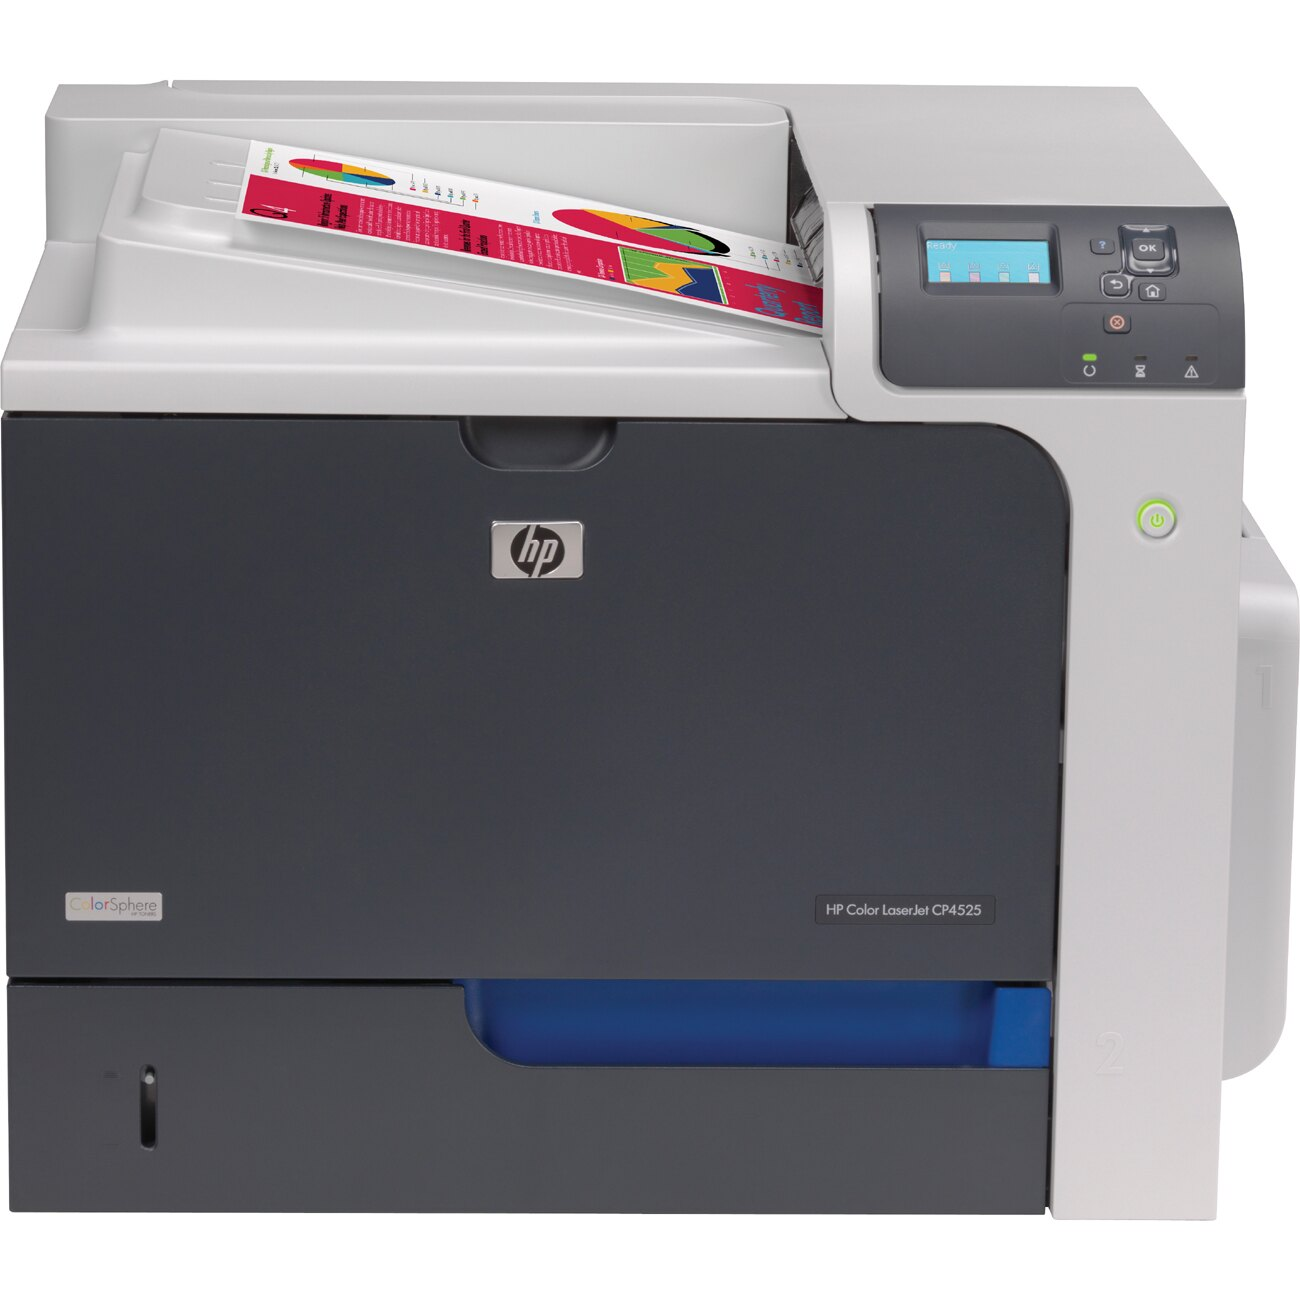 HP LaserJet CP4000 CP4525N Laser Printer - Color - Plain Paper Print - Desktop - 42ppm Mono/42ppm Color Print - 1200 x 1200dpi Print - 600 sheets Input - Gigabit Ethernet - USB 0